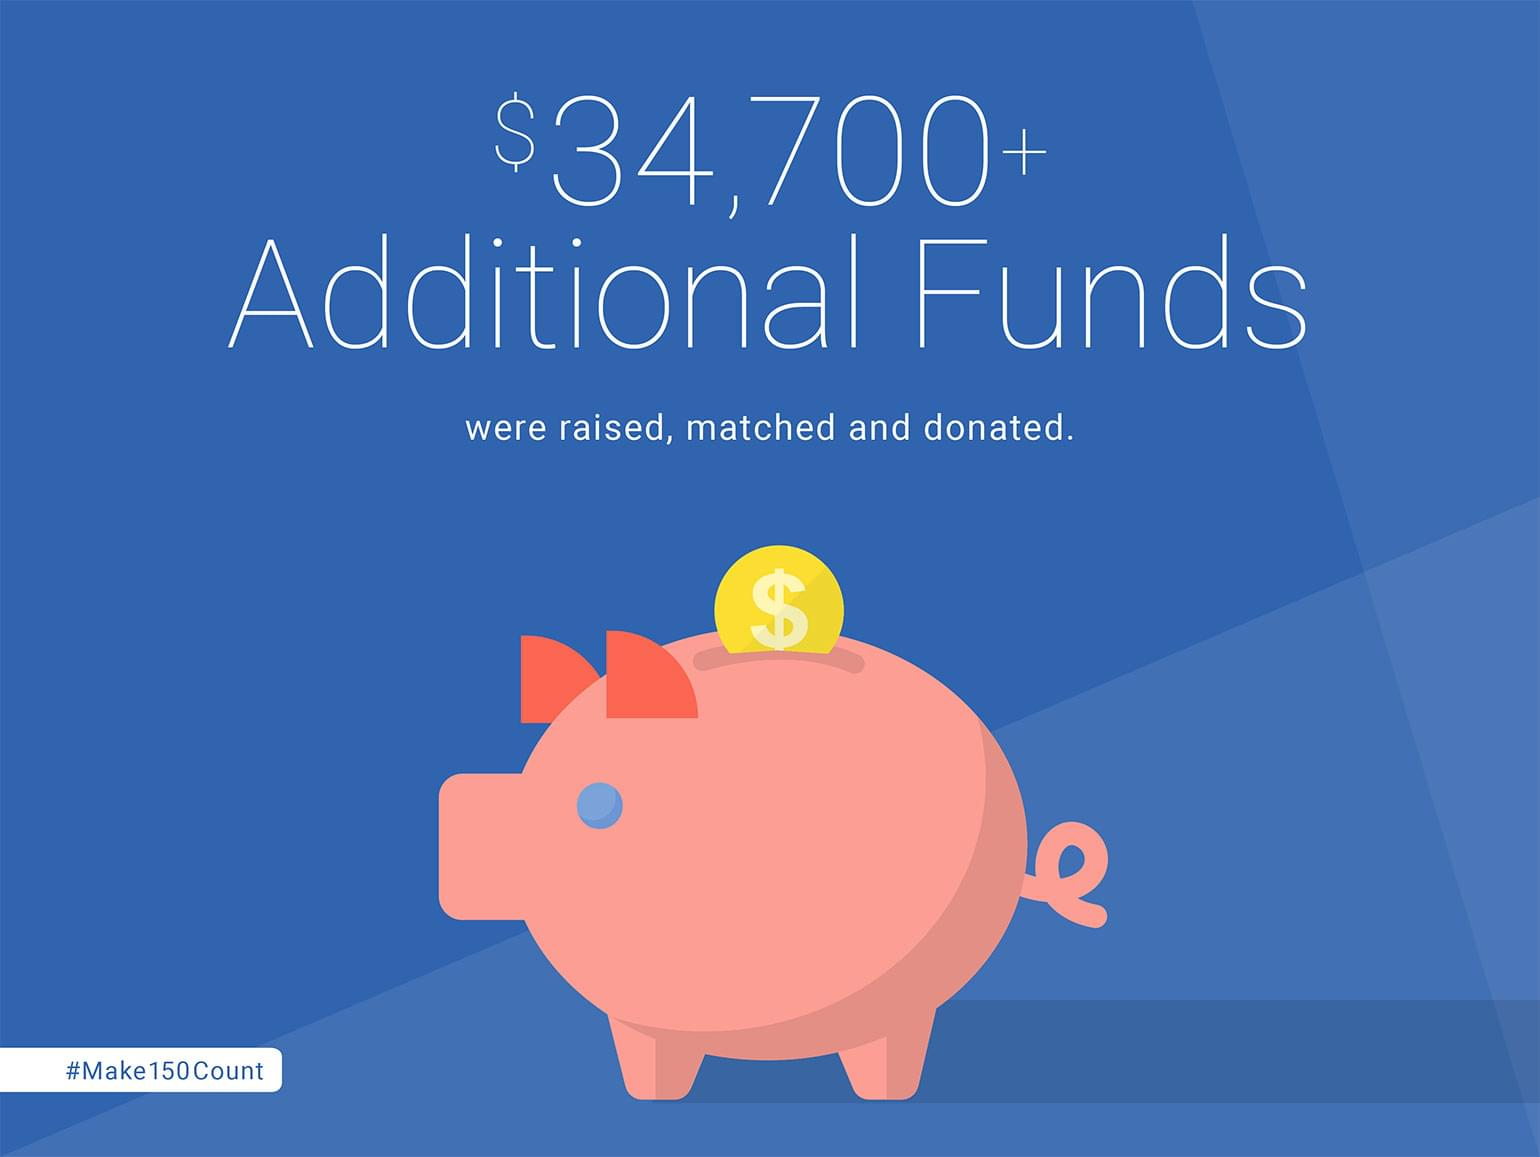 $34,700+ Additional Funds were raised, matched and donated.